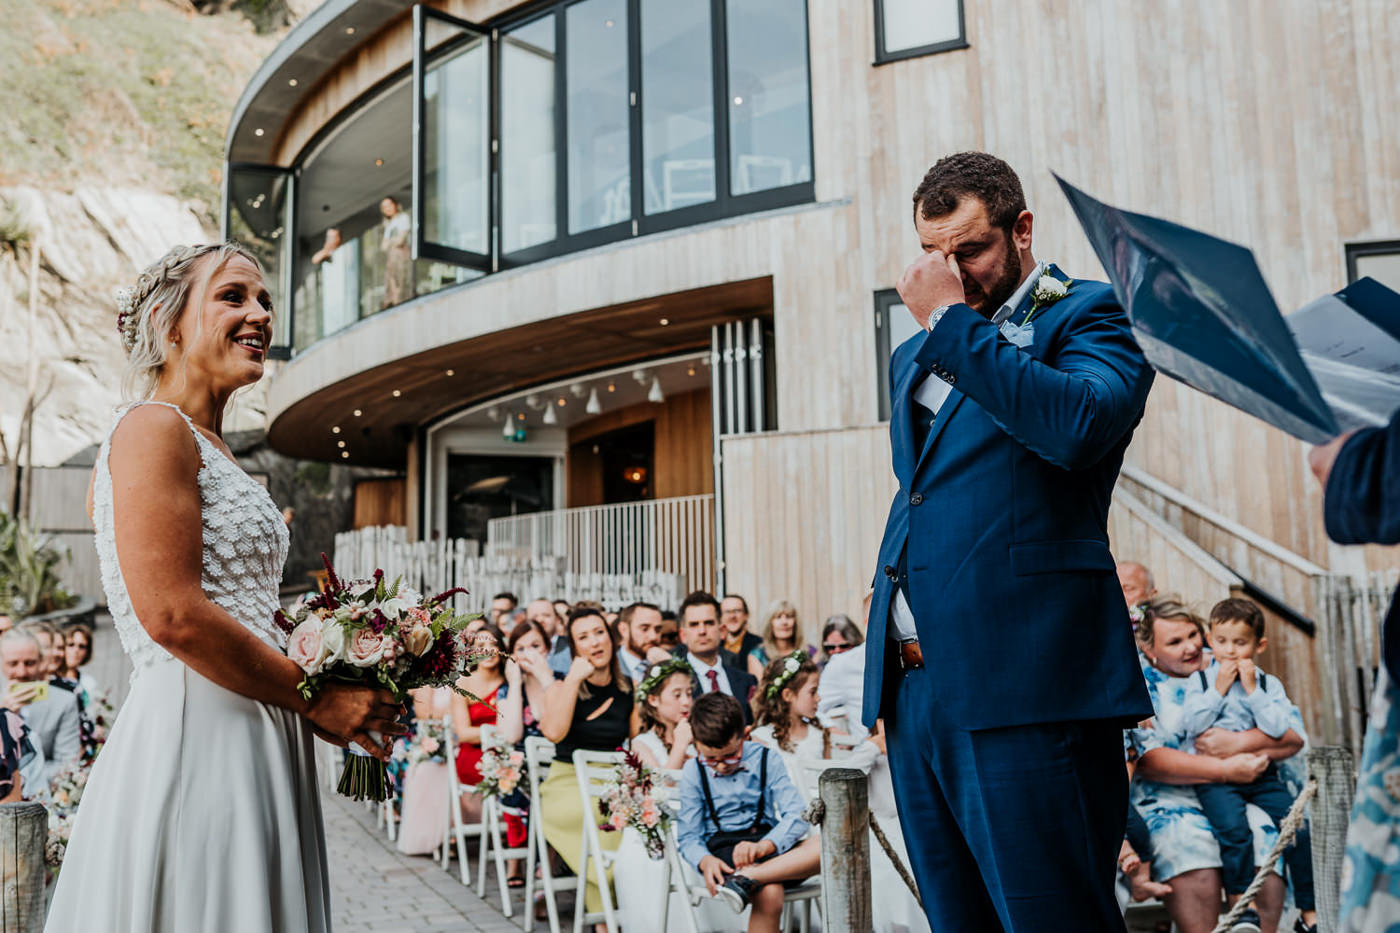 groom getting emotional during wedding ceremony